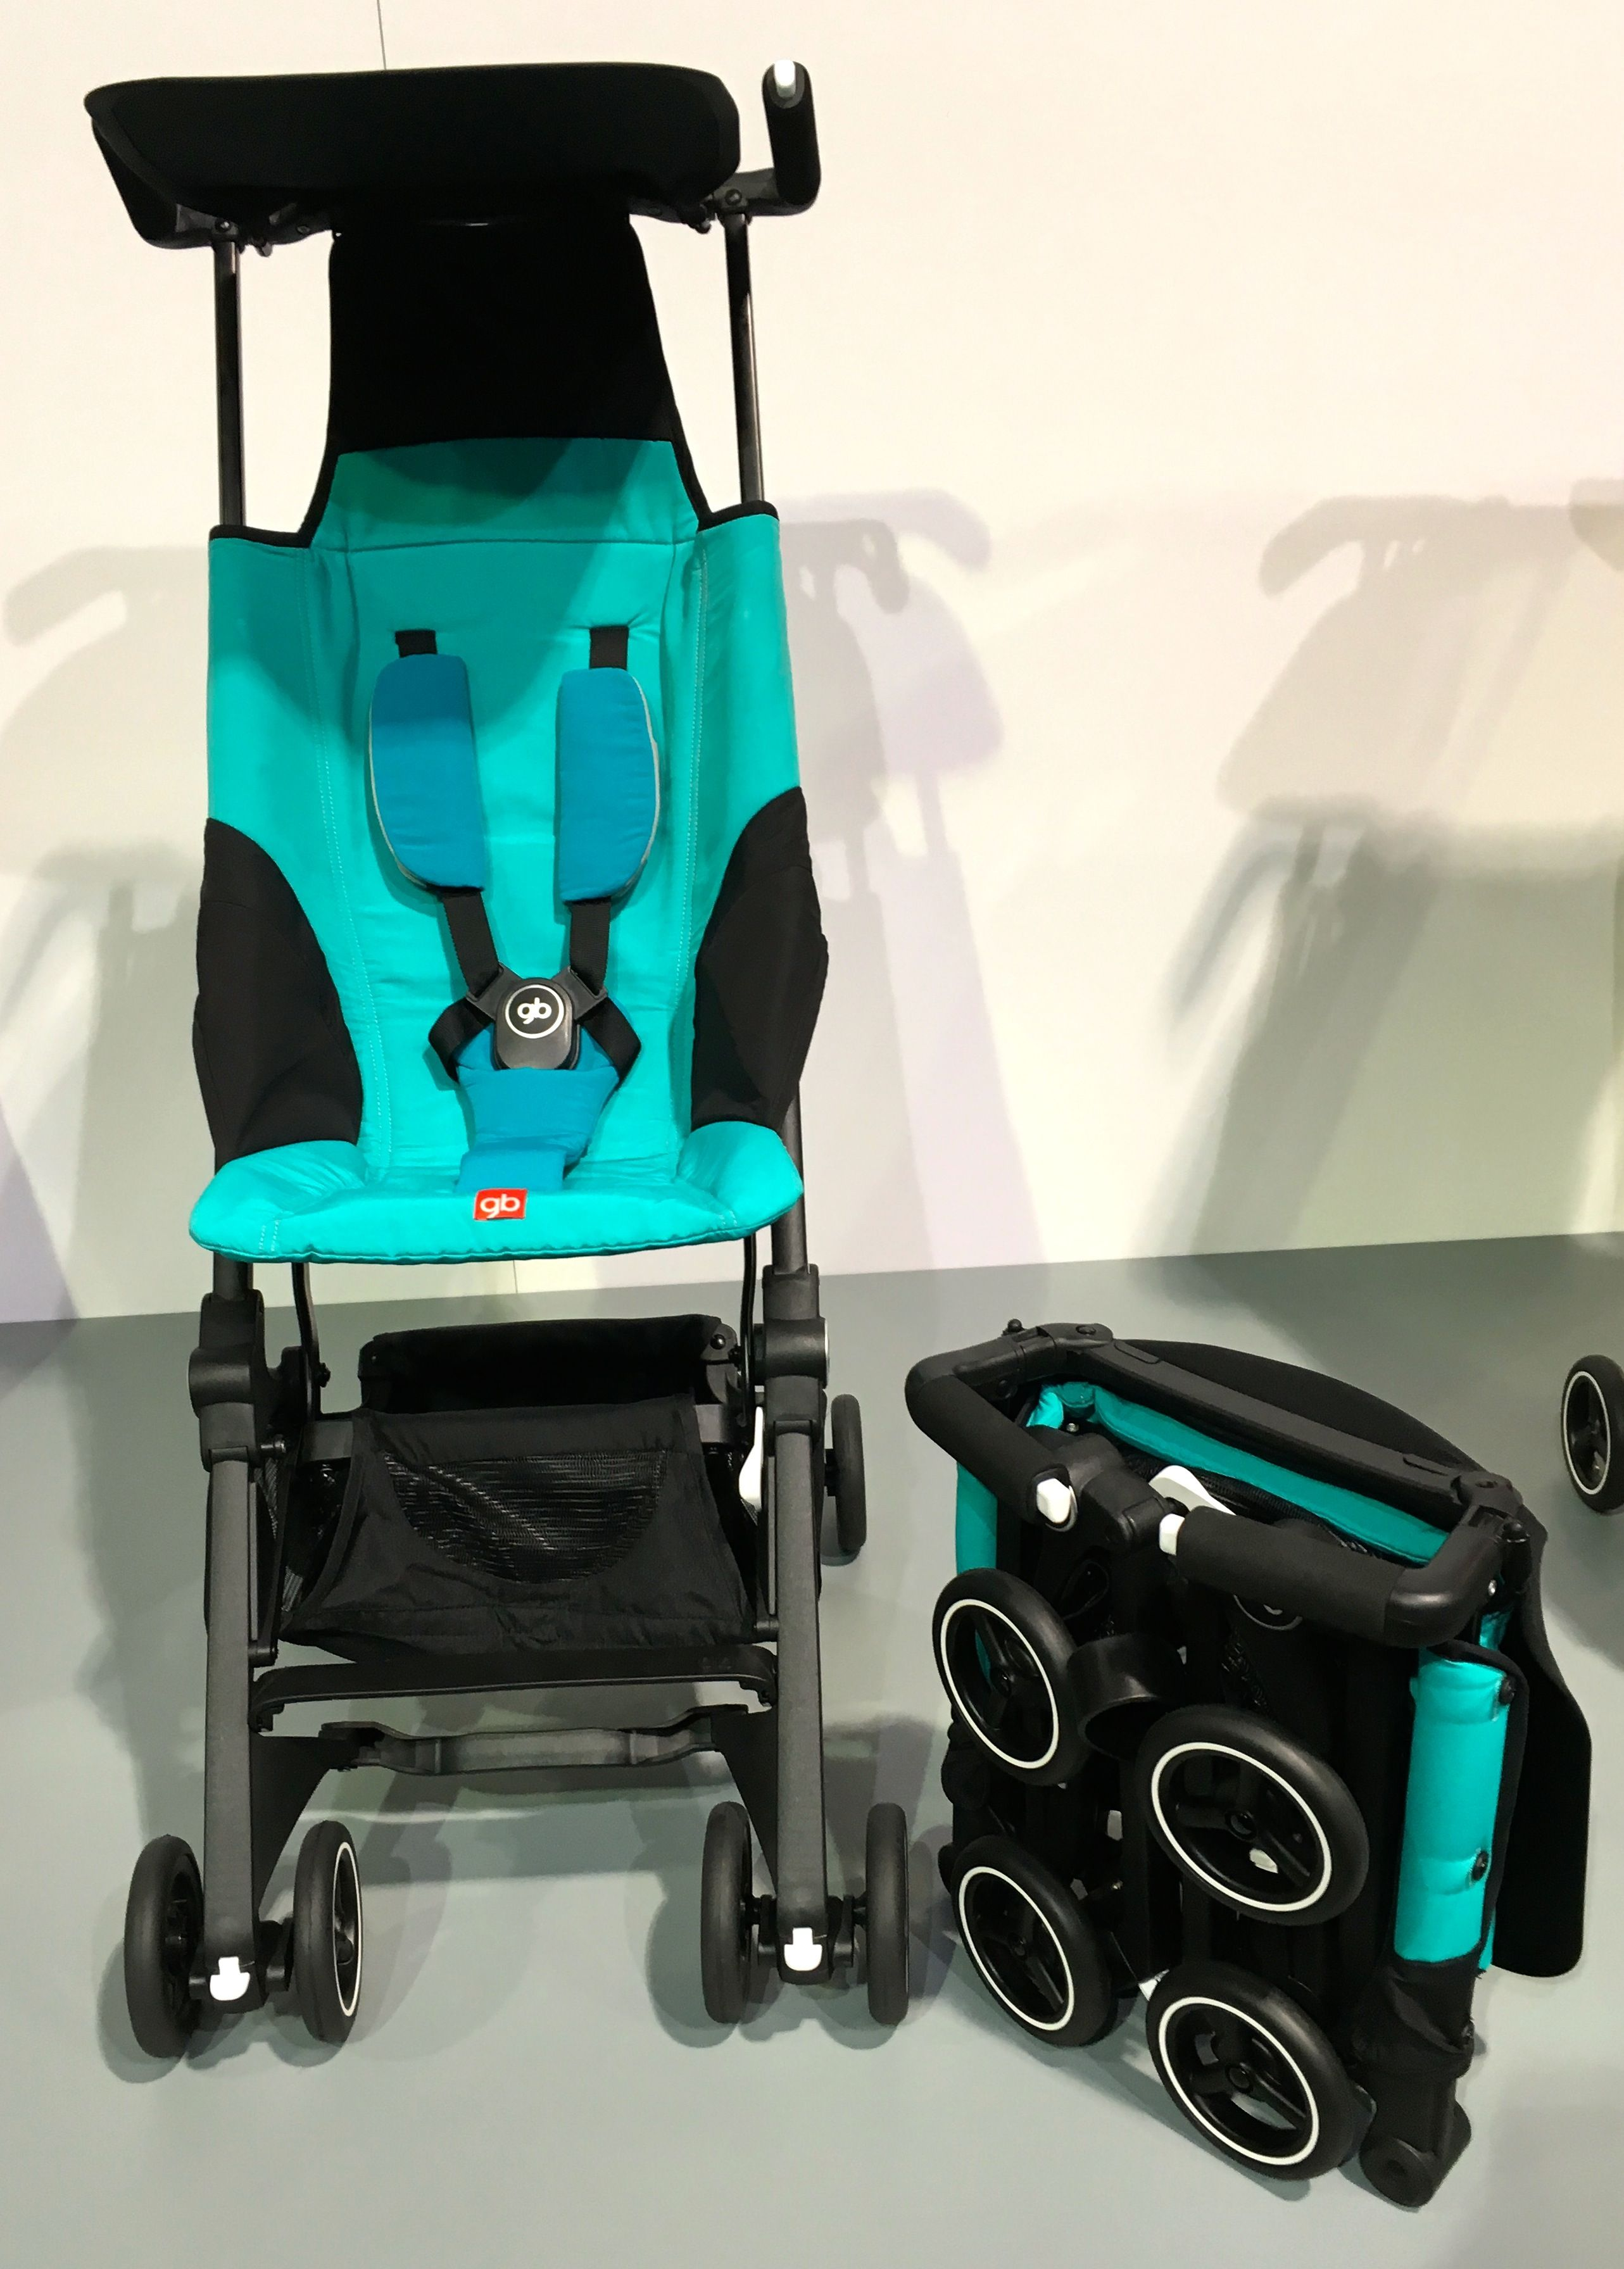 Another GB stroller, the Pockit folds into that tiny